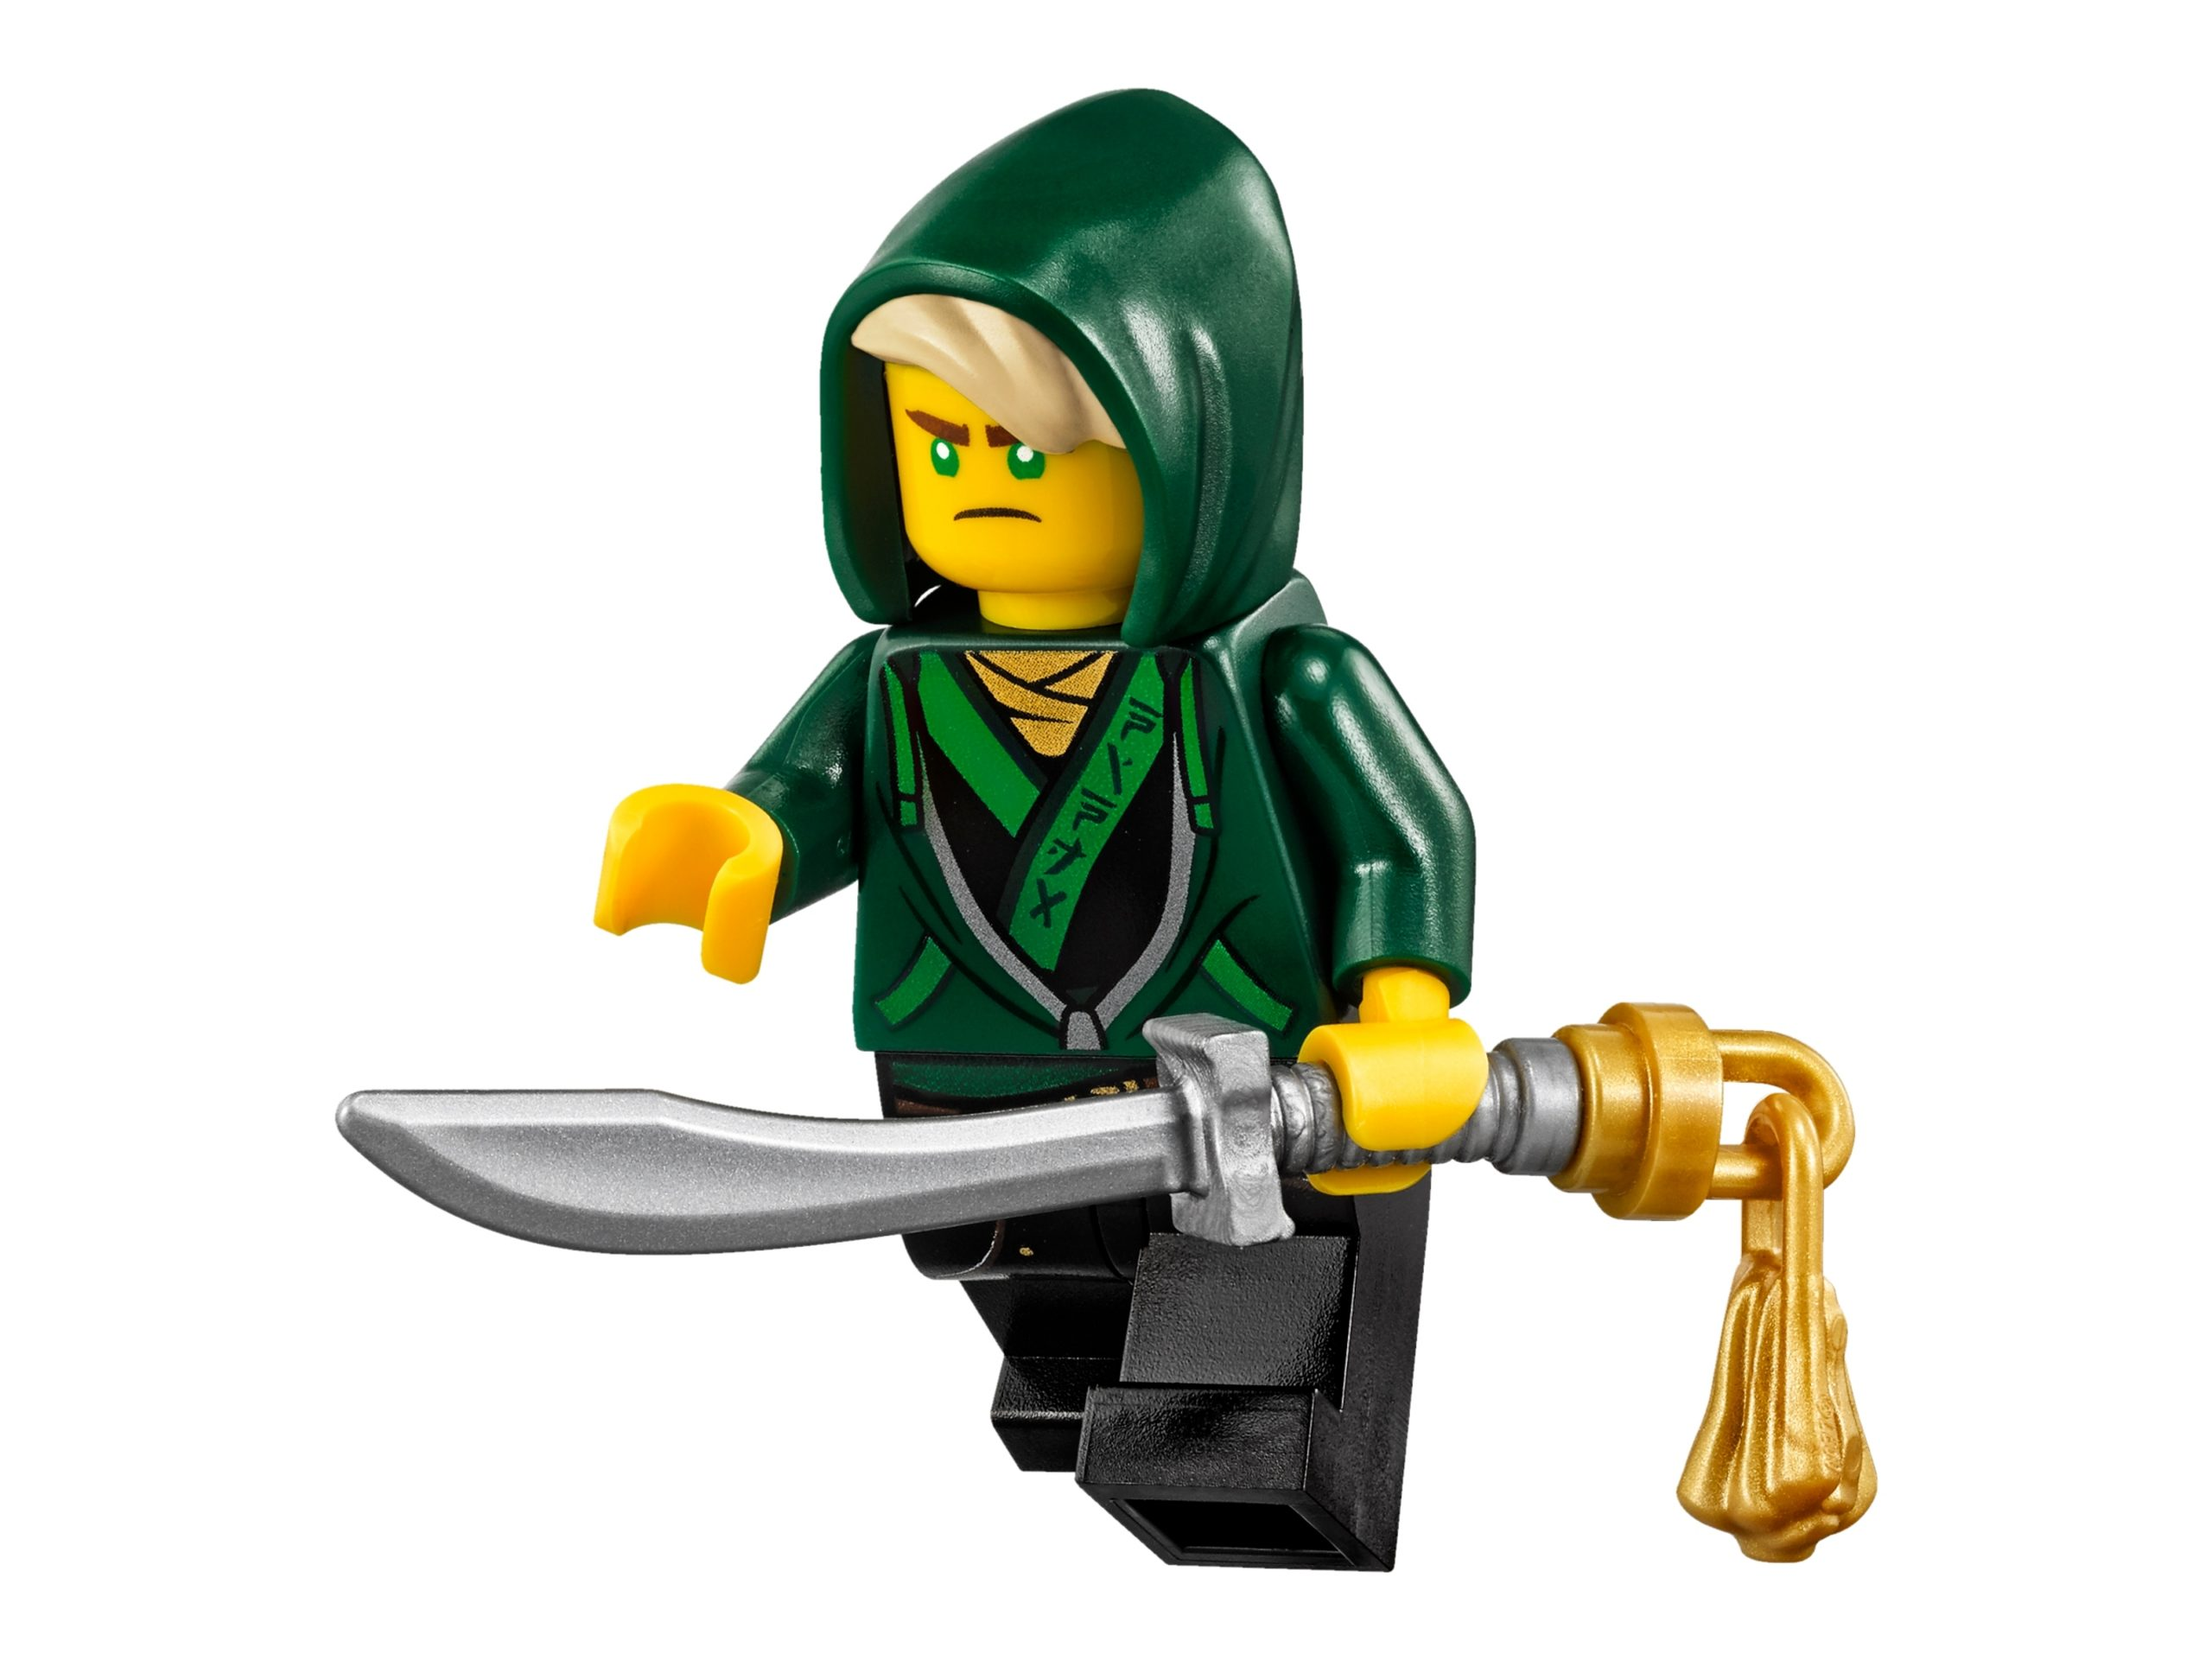 minifigure di lloyd lego 30609 ninjago scaled